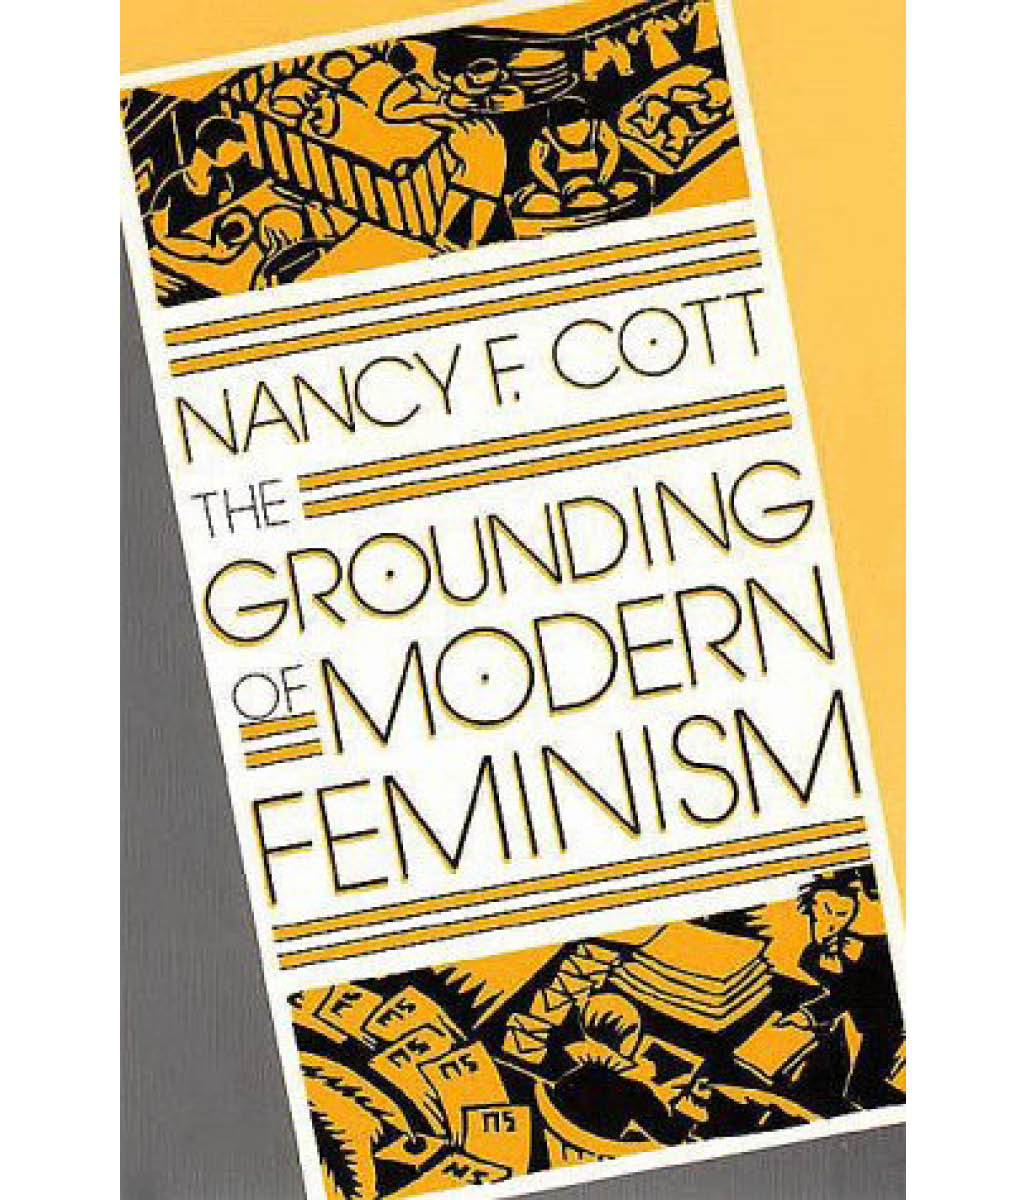 The Grounding of Modern Feminism Nancy F. Cott